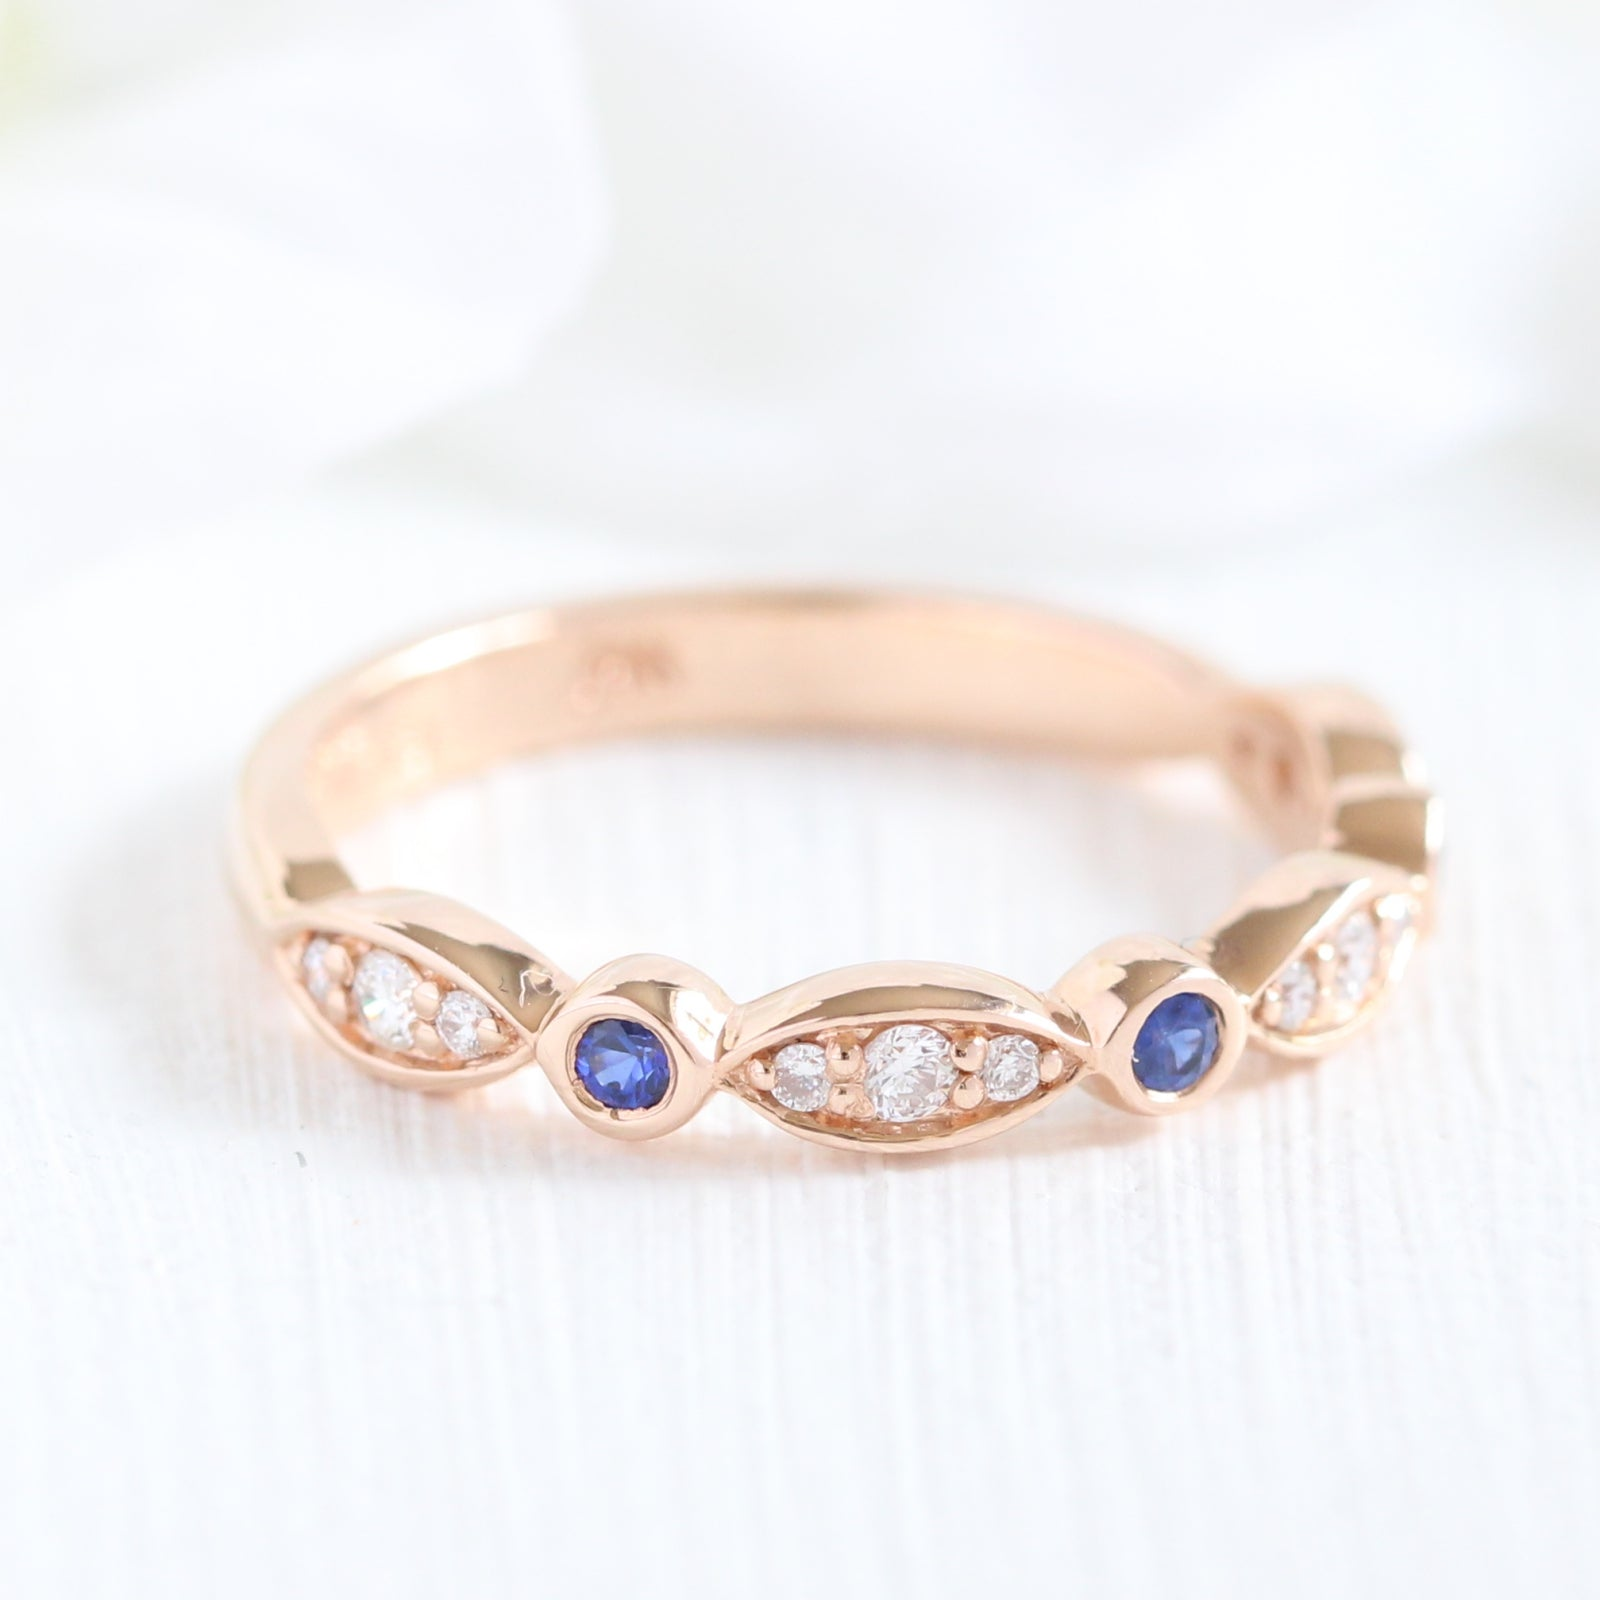 Sapphire Wedding Rings.Sapphire And Diamond Ring In Rose Gold Scalloped Bezel Band